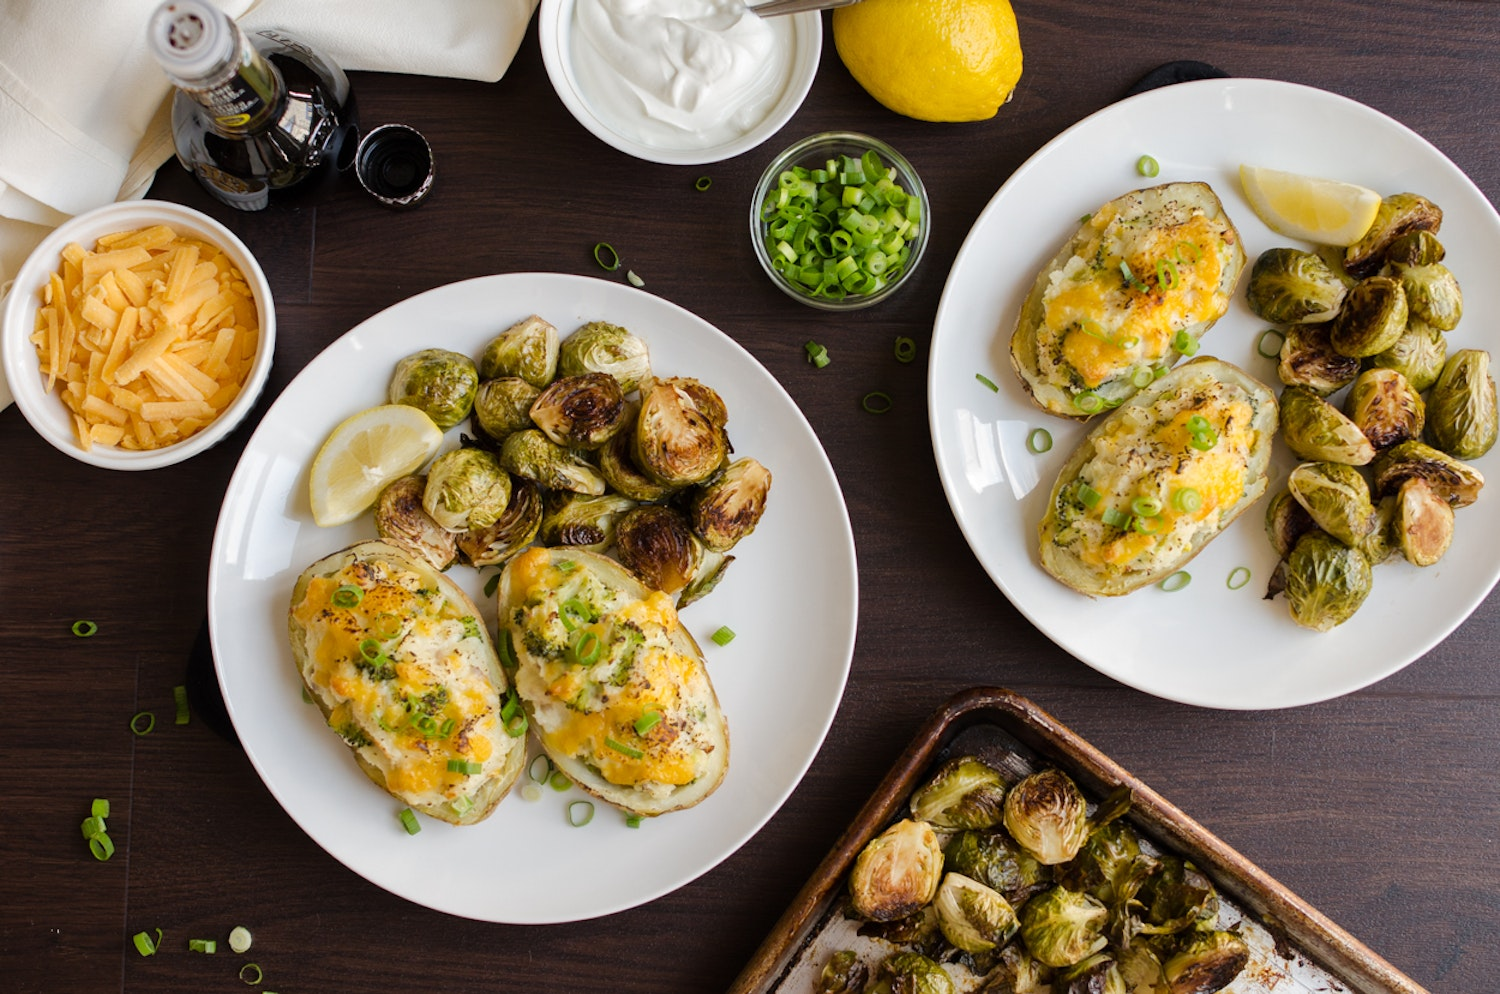 20181008 twice baked potatoes with broccoli nm 2.jpg?ixlib=rails 2.1